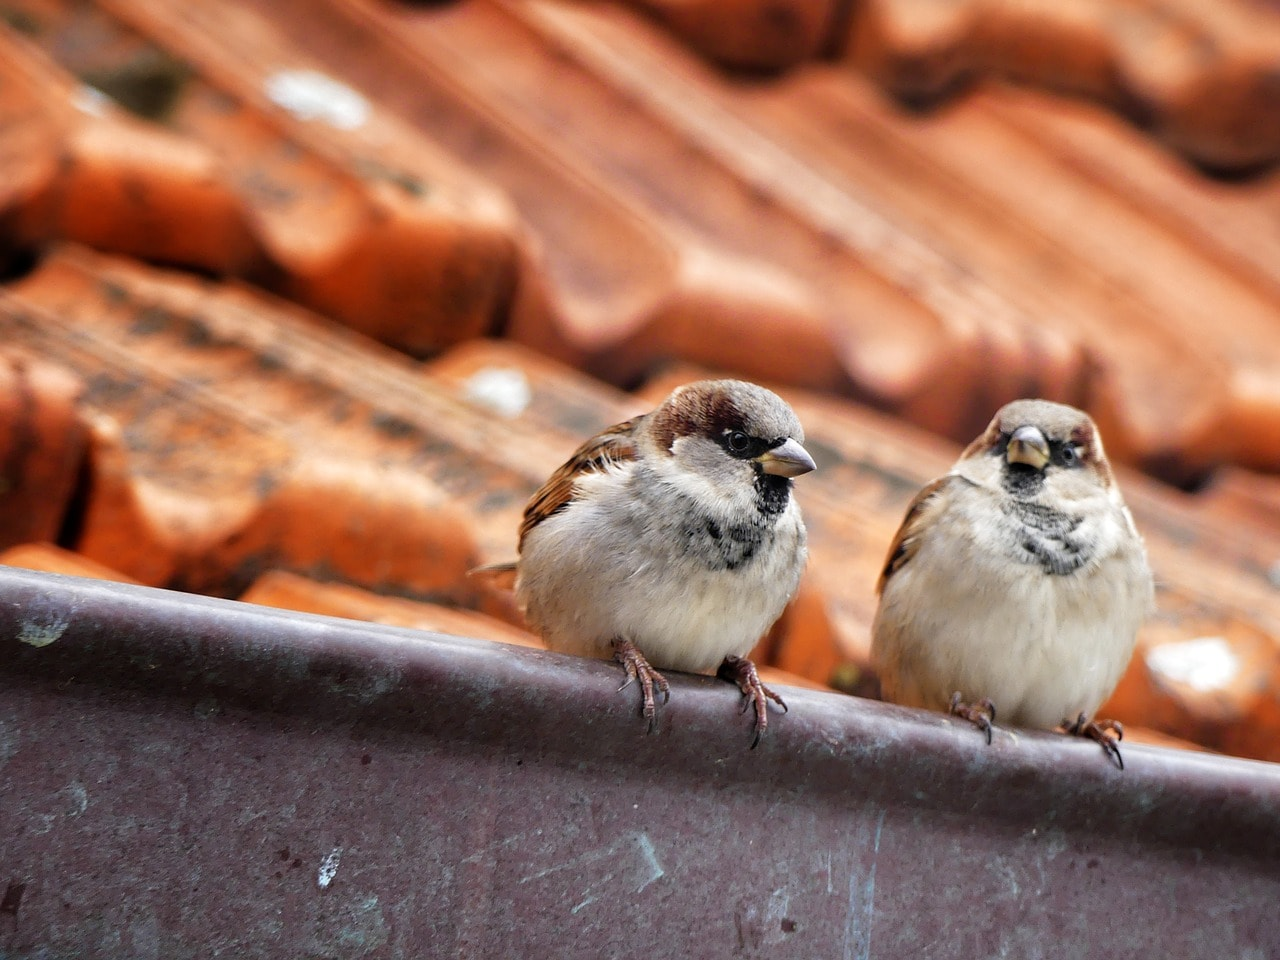 The house sparrow is monogamous, and mates for life. (Image: Pixabay)